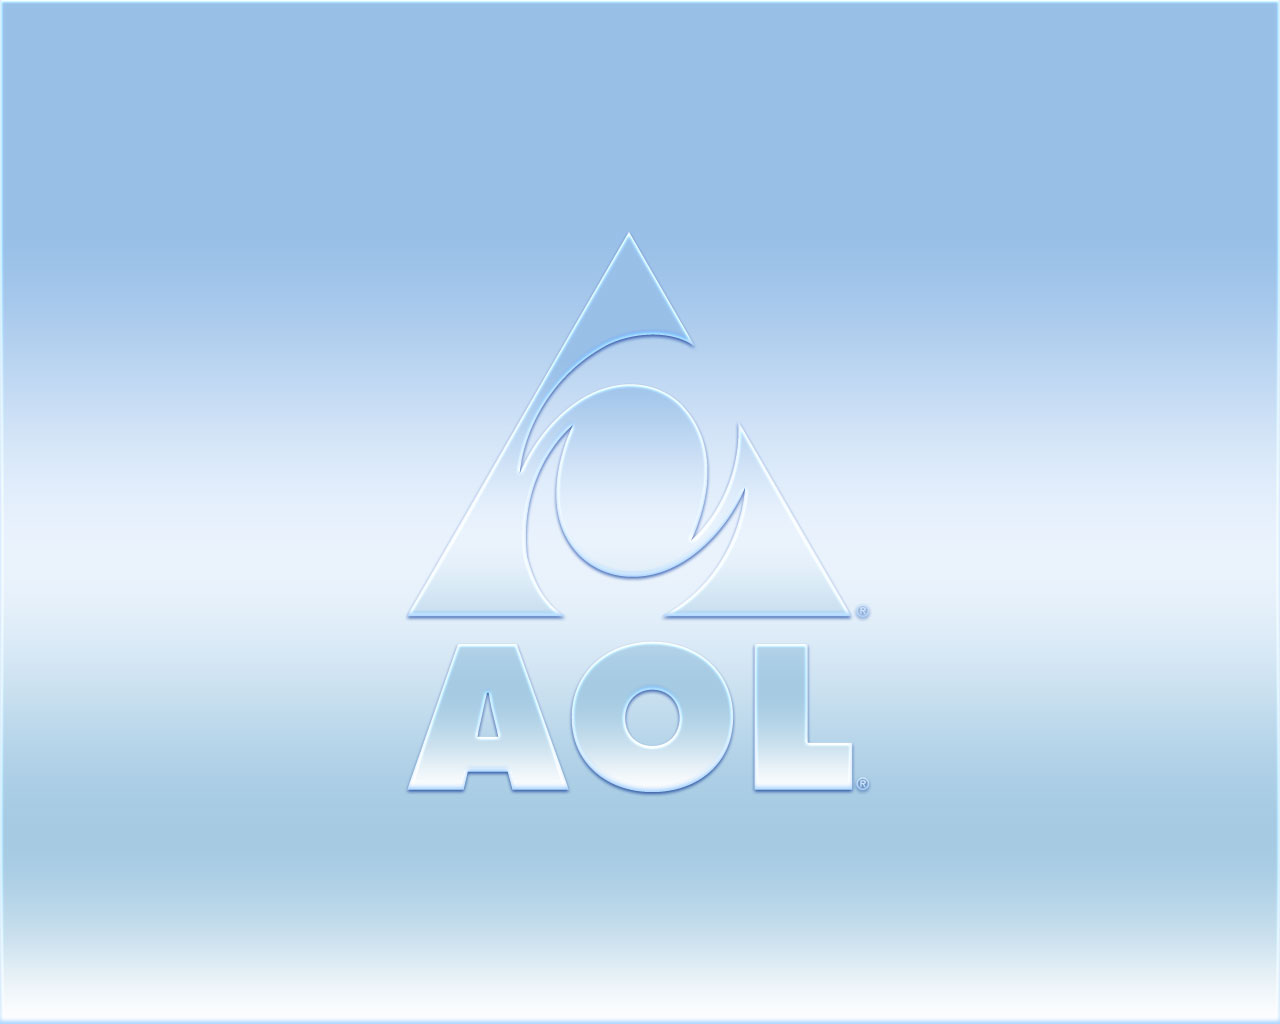 Decorate your desktop with AOL wallpapers 1280x1024